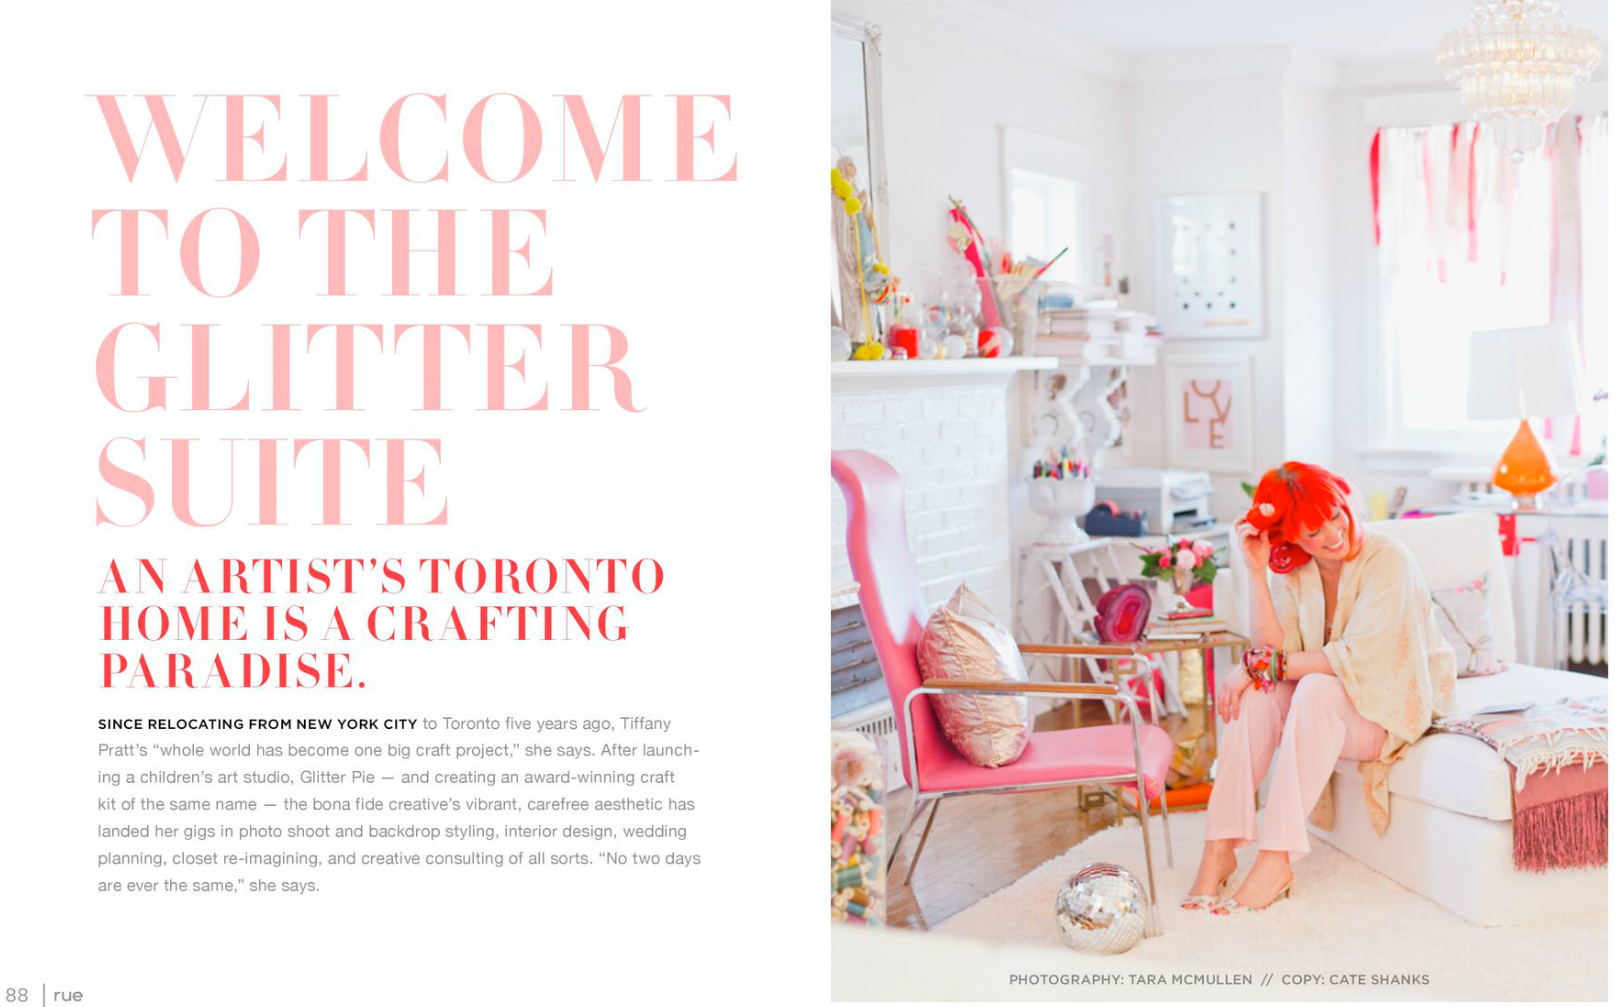 tara mcmullen photography tiffany pratt's home in rue magazine rue magazine color issue tiffany pink hair glitter suite-1